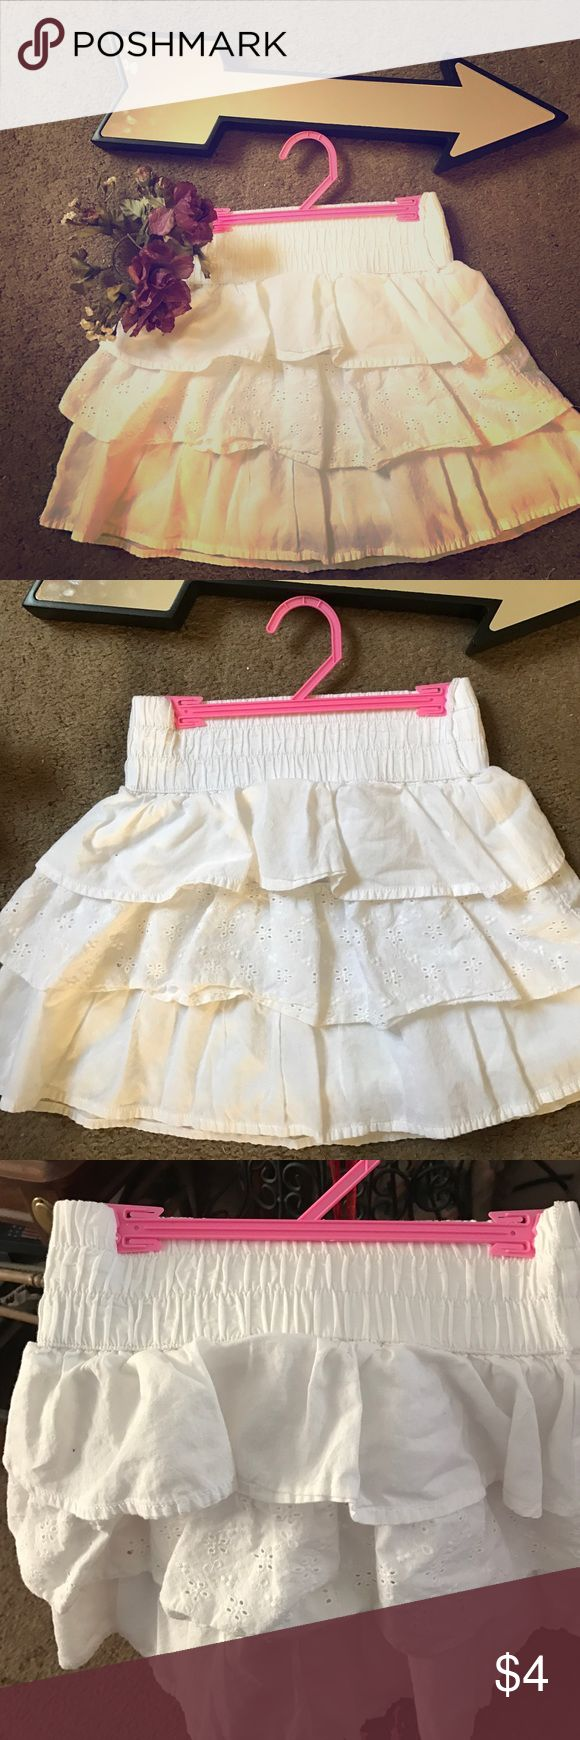 CATO WHITE EYELET SKIRT CUTE EYELET SKIRT. SO CUTE. STRETCH WAIST. NO STAINS Cato Bottoms Skirts